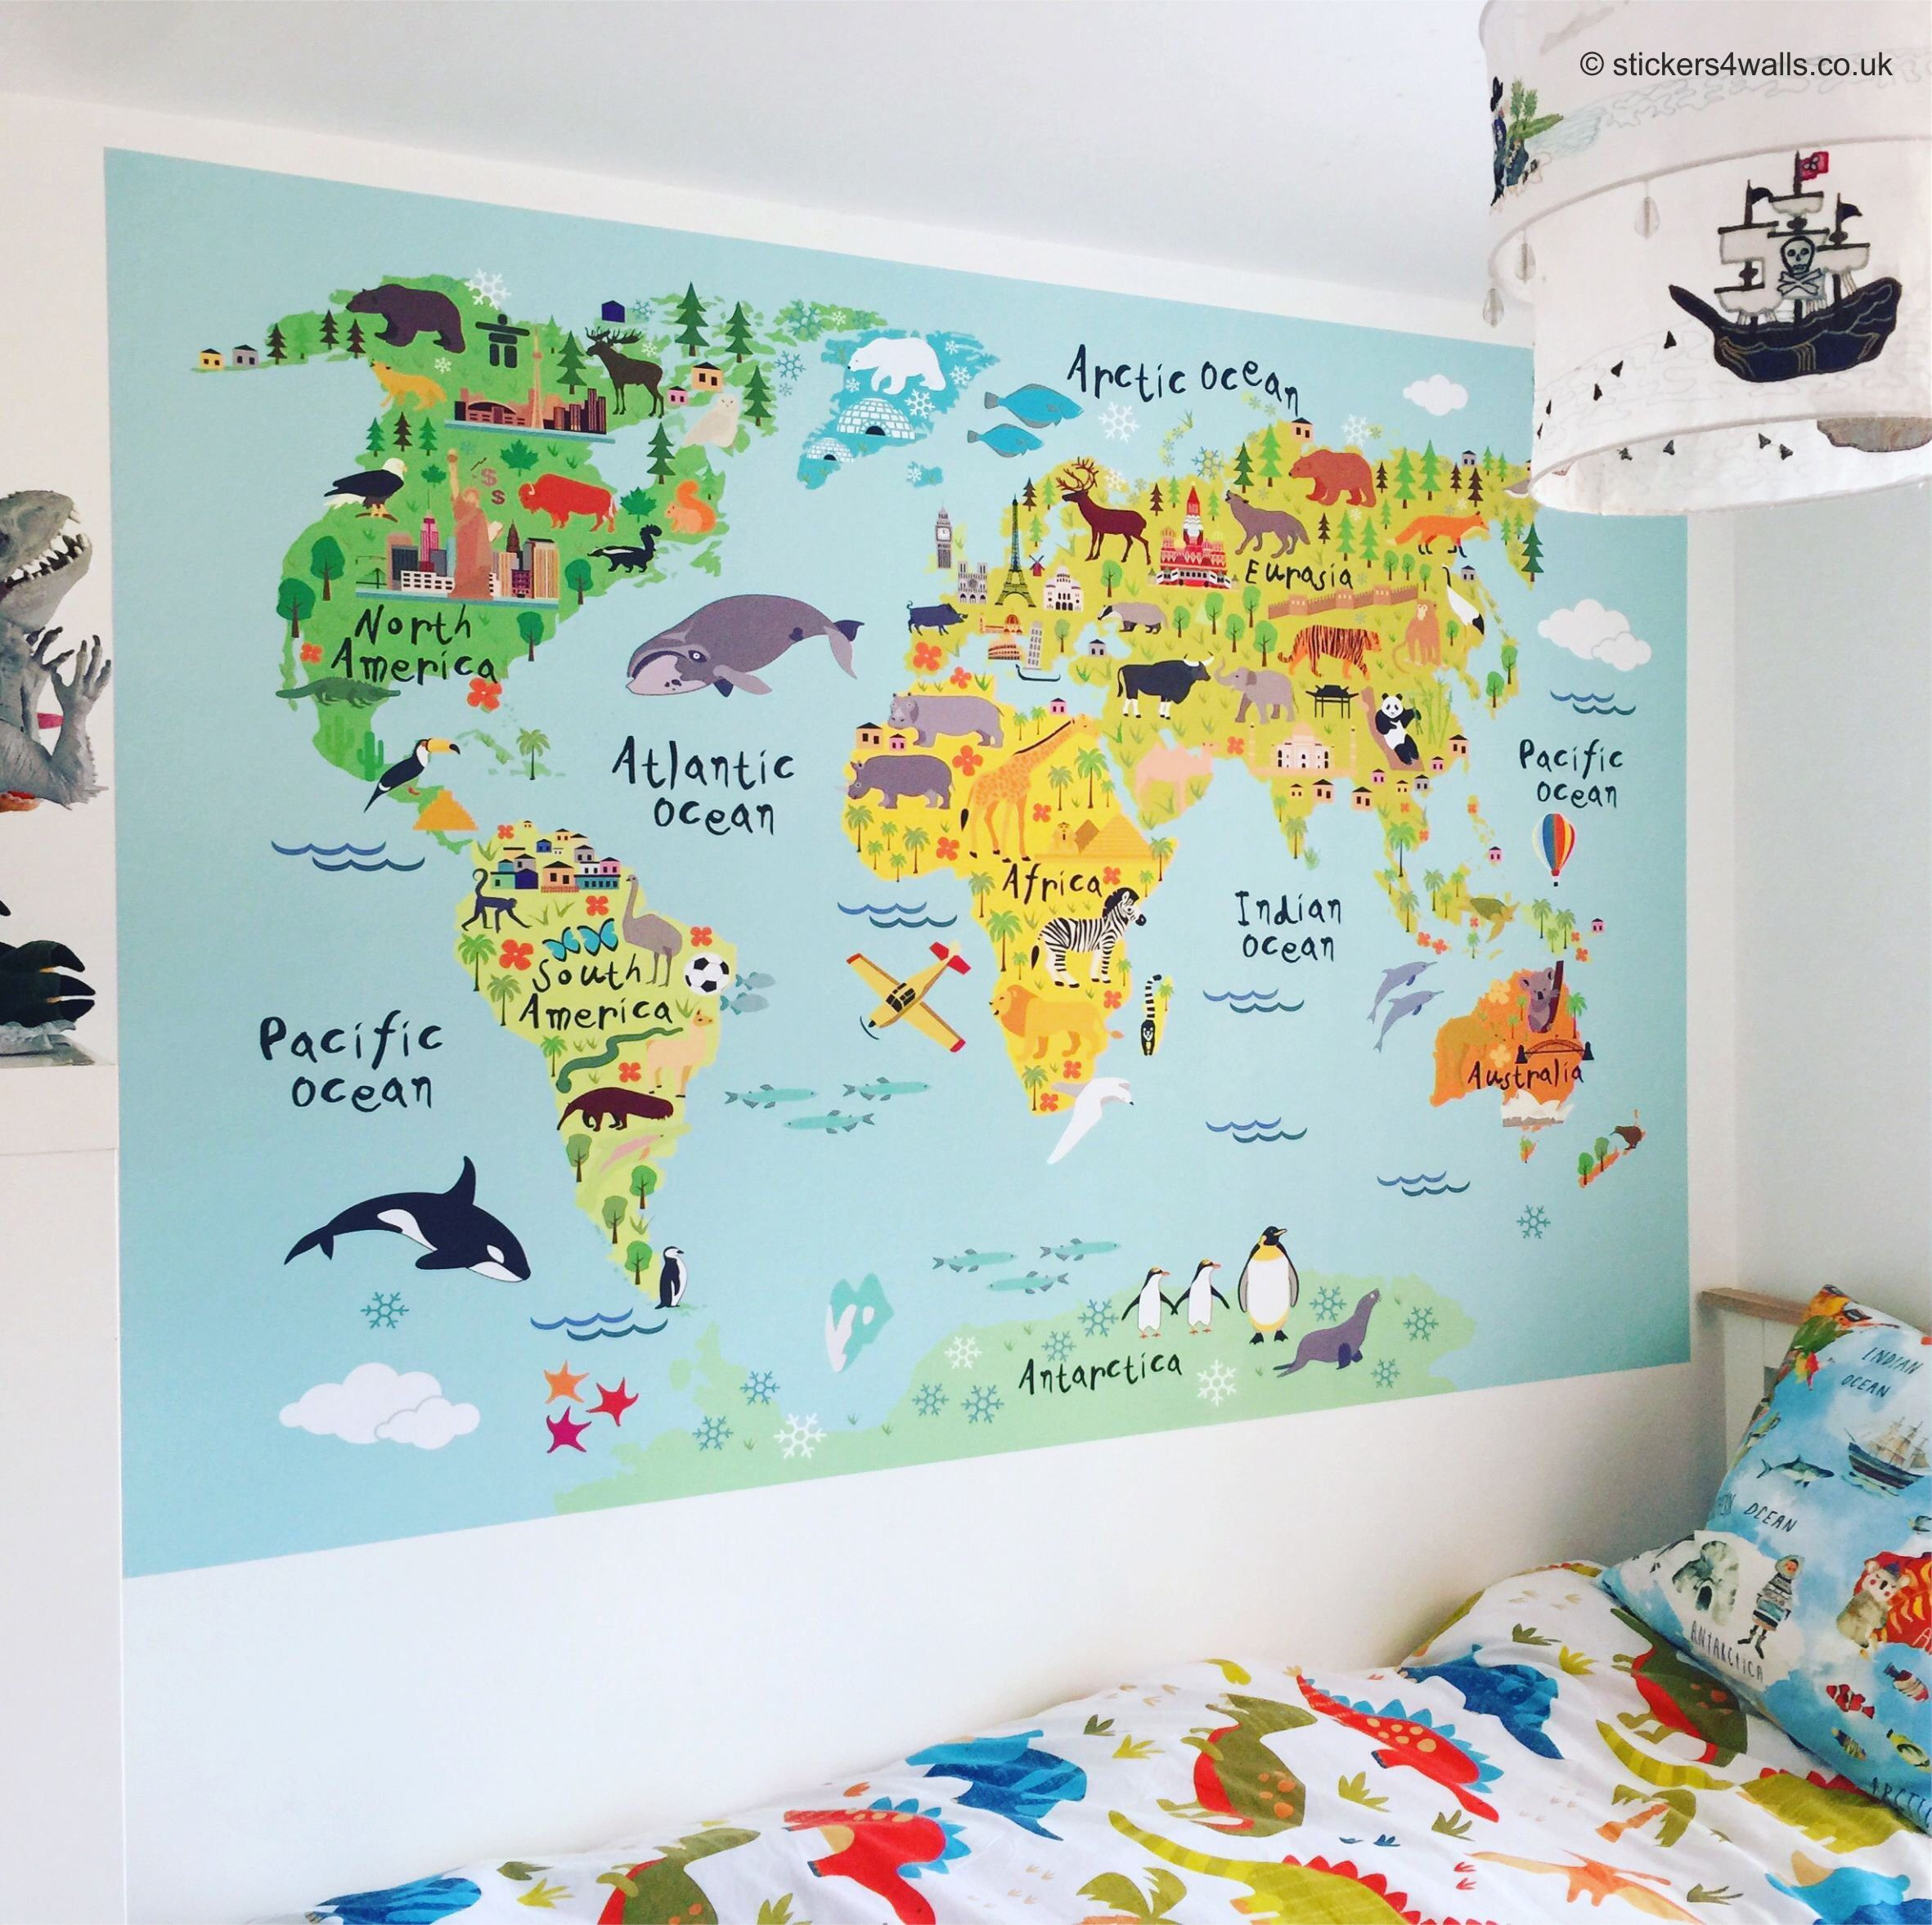 World Map Wall Sticker for Kids, Map of the World Fabric Wall ... on world map magnet, world map family, world map mobile, world map tree decal, world map box, awesome truck stickers decal, world map stencil, large world map decal, world wall sticker, world map engraving, giant world map decal, world map macbook decal, world map bedroom decor, world map bowl, world country decals, world vinyl paper, world map wallpaper, world map pottery barn decal, world map baby nursery, world map skin,